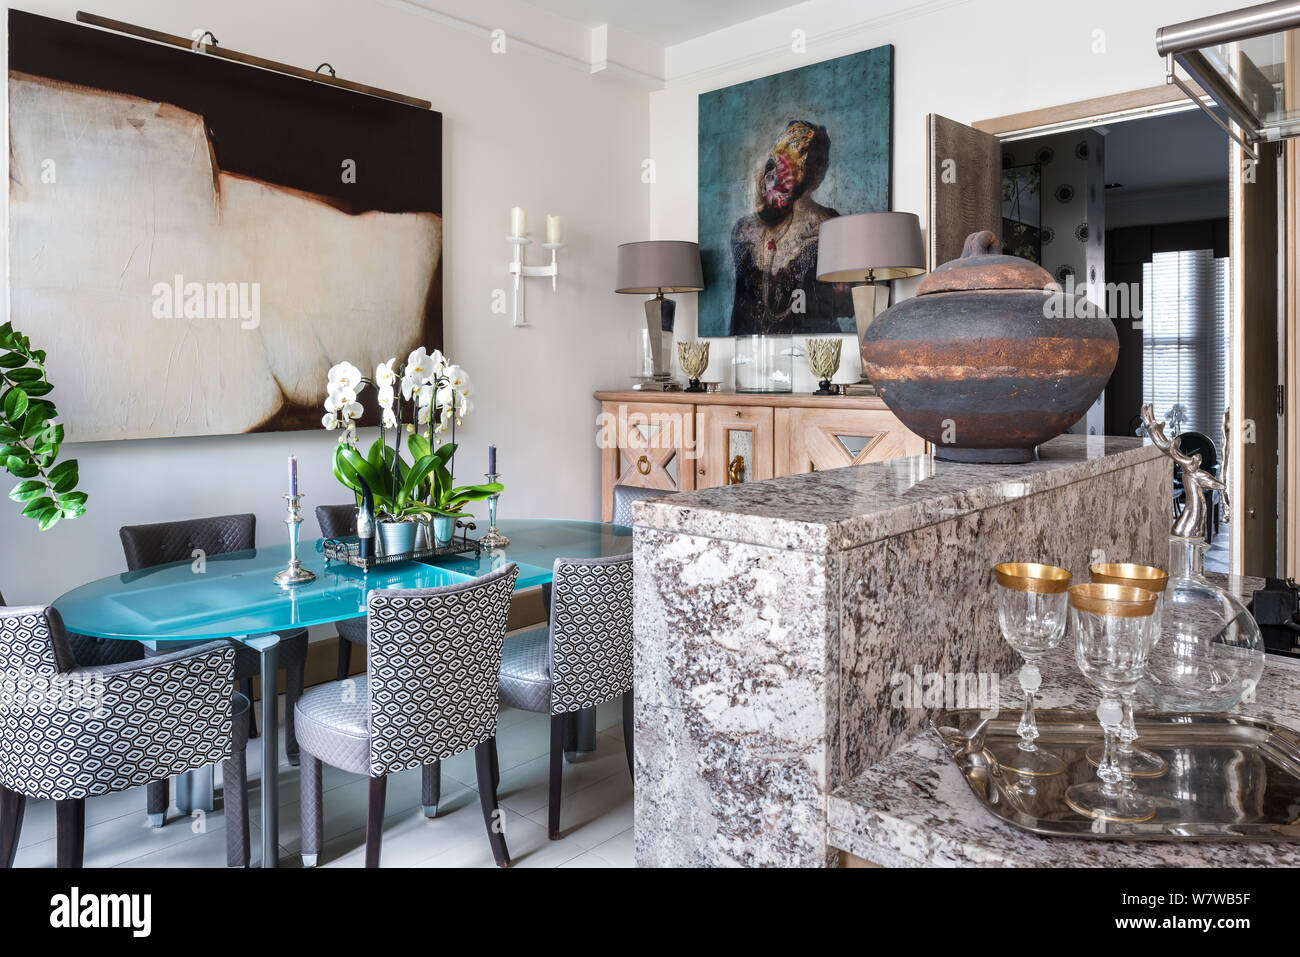 Contemporary Dining Room By Marble Kitchen Counter Stock Photo Alamy